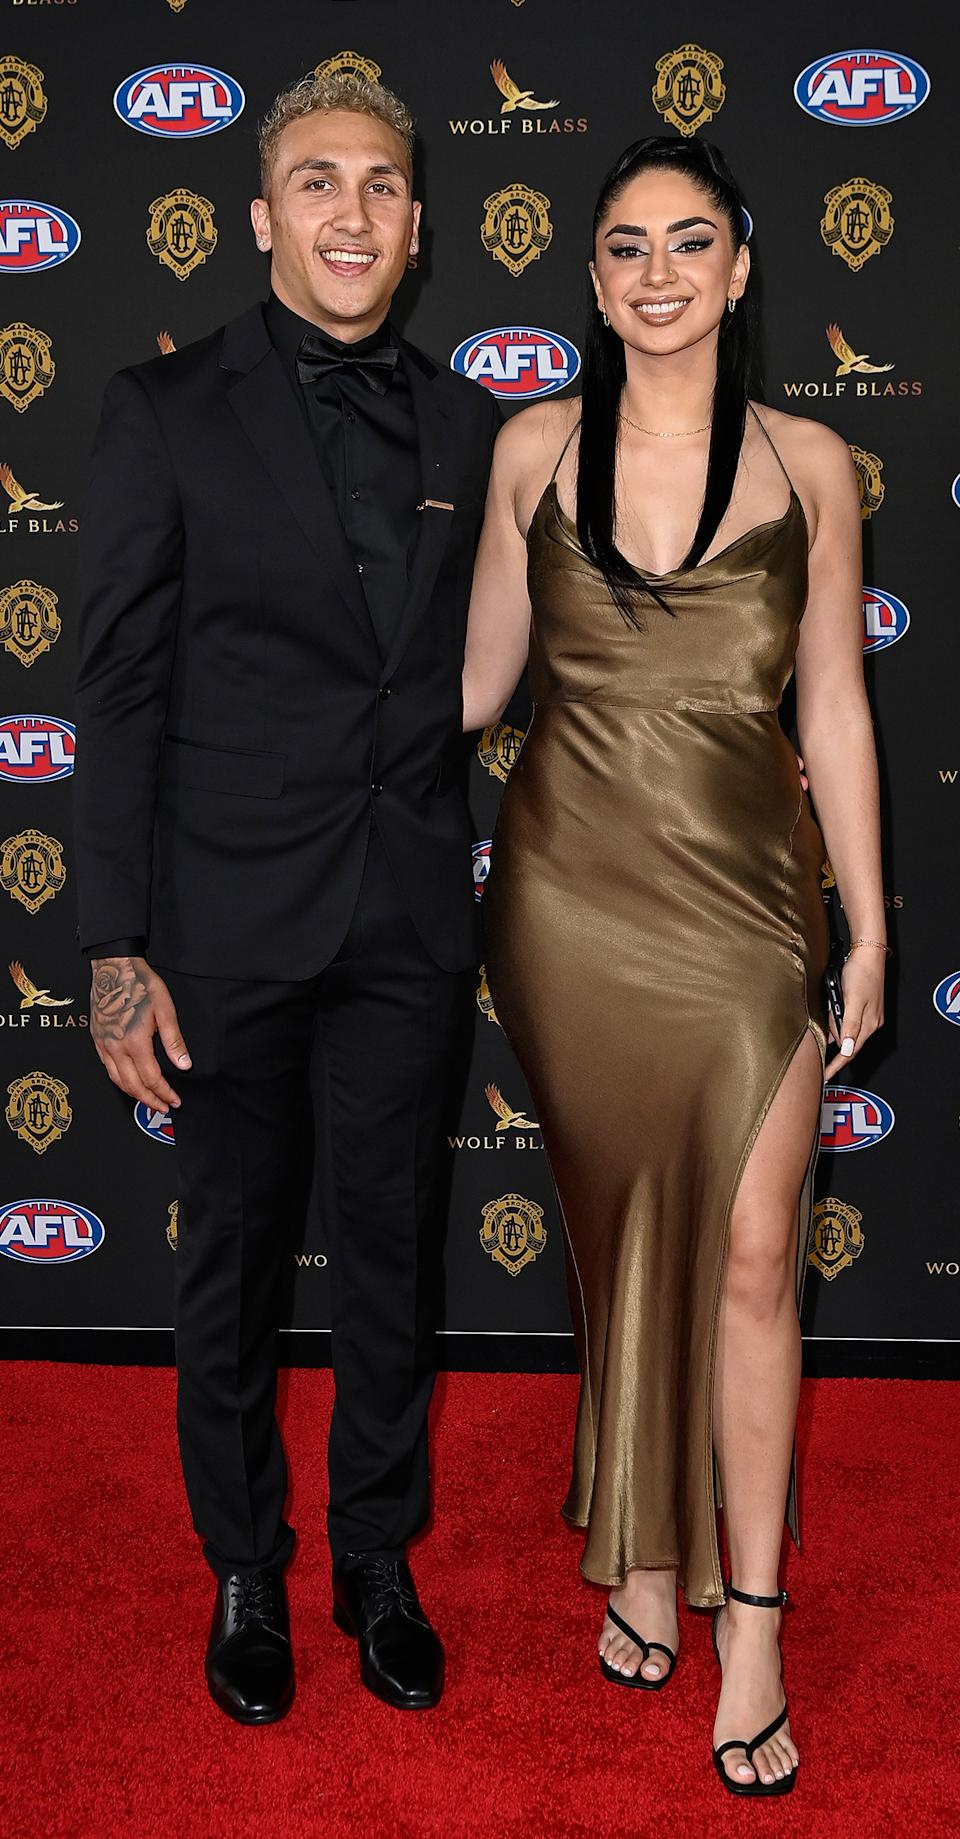 Shai Bolton and Hasina Baluch at the Brownlow Medal 2021